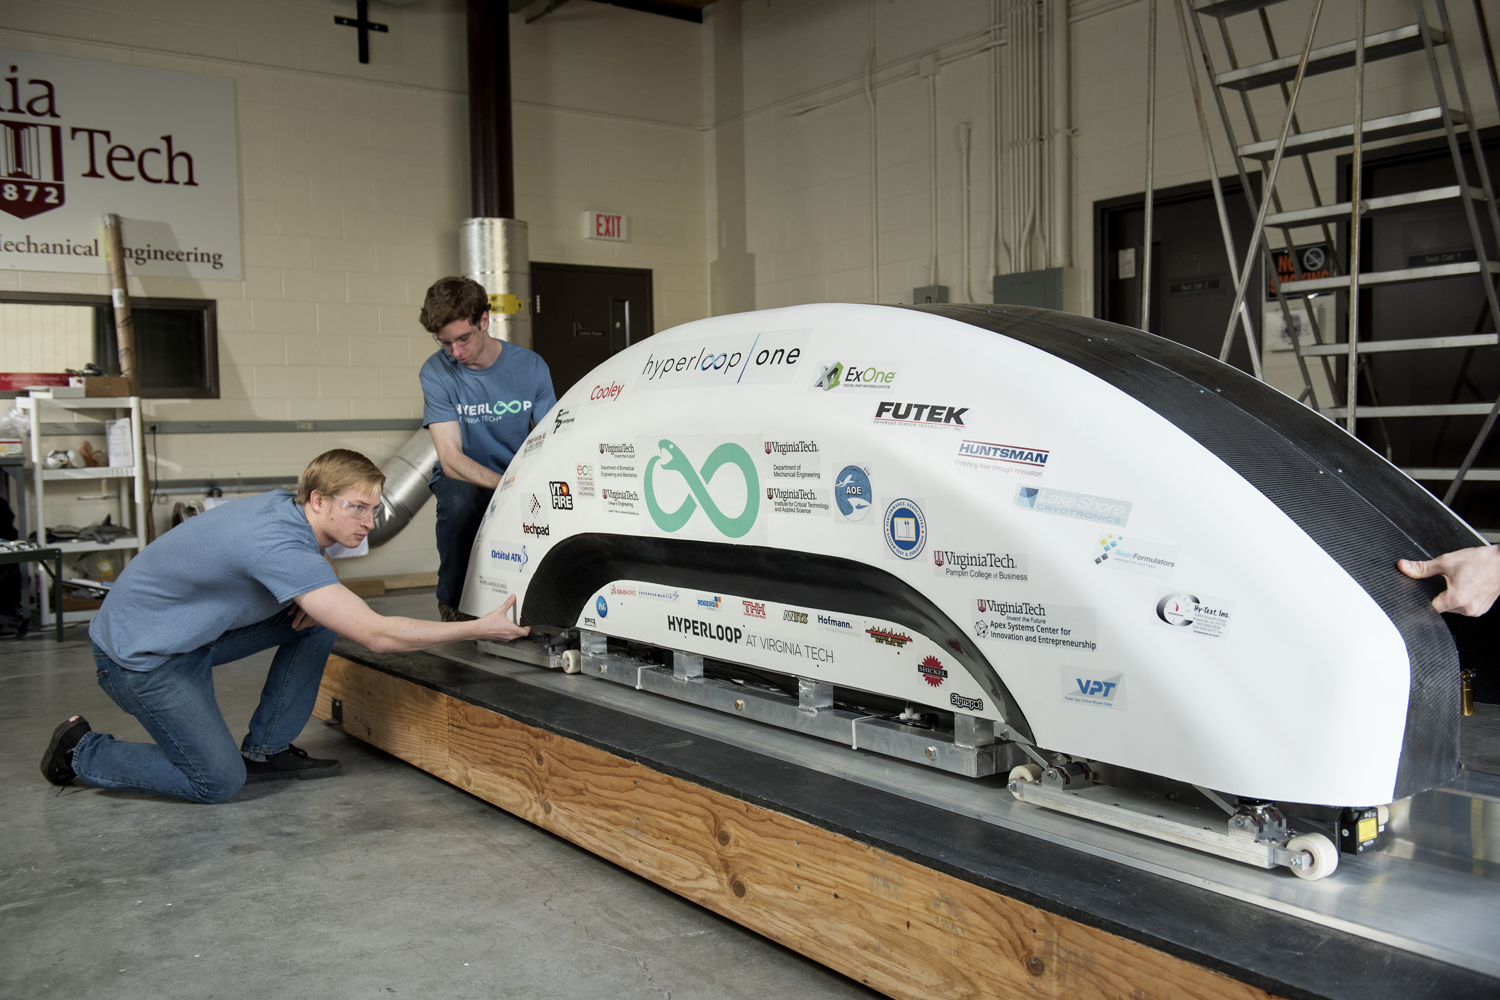 Hyperloop at Virginia Tech team with the final pod they have built for the competition at SpaceX. (Courtesy Virginia Tech College of Engineering)